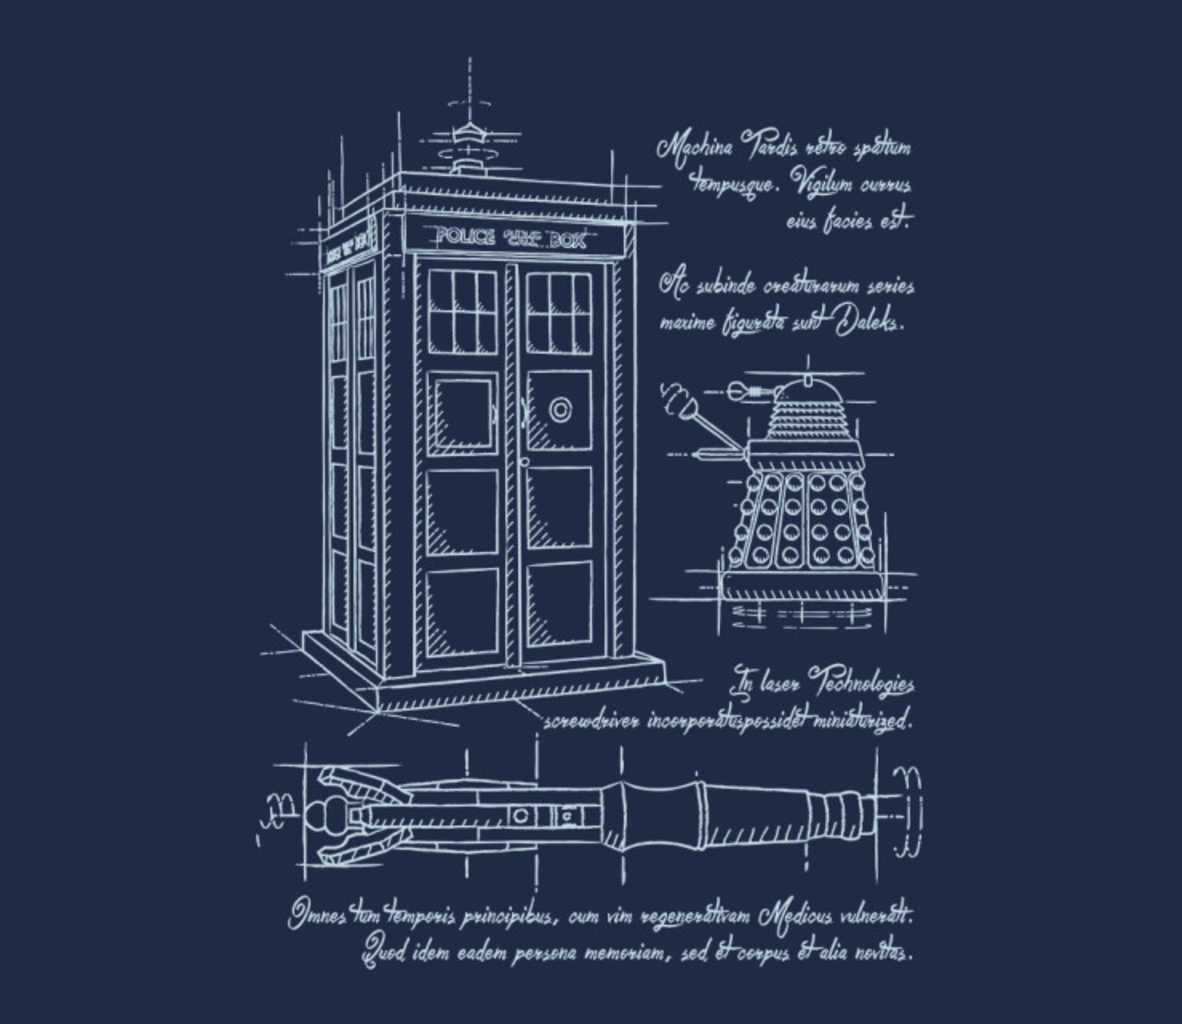 TeeFury: Time Travel Schematic